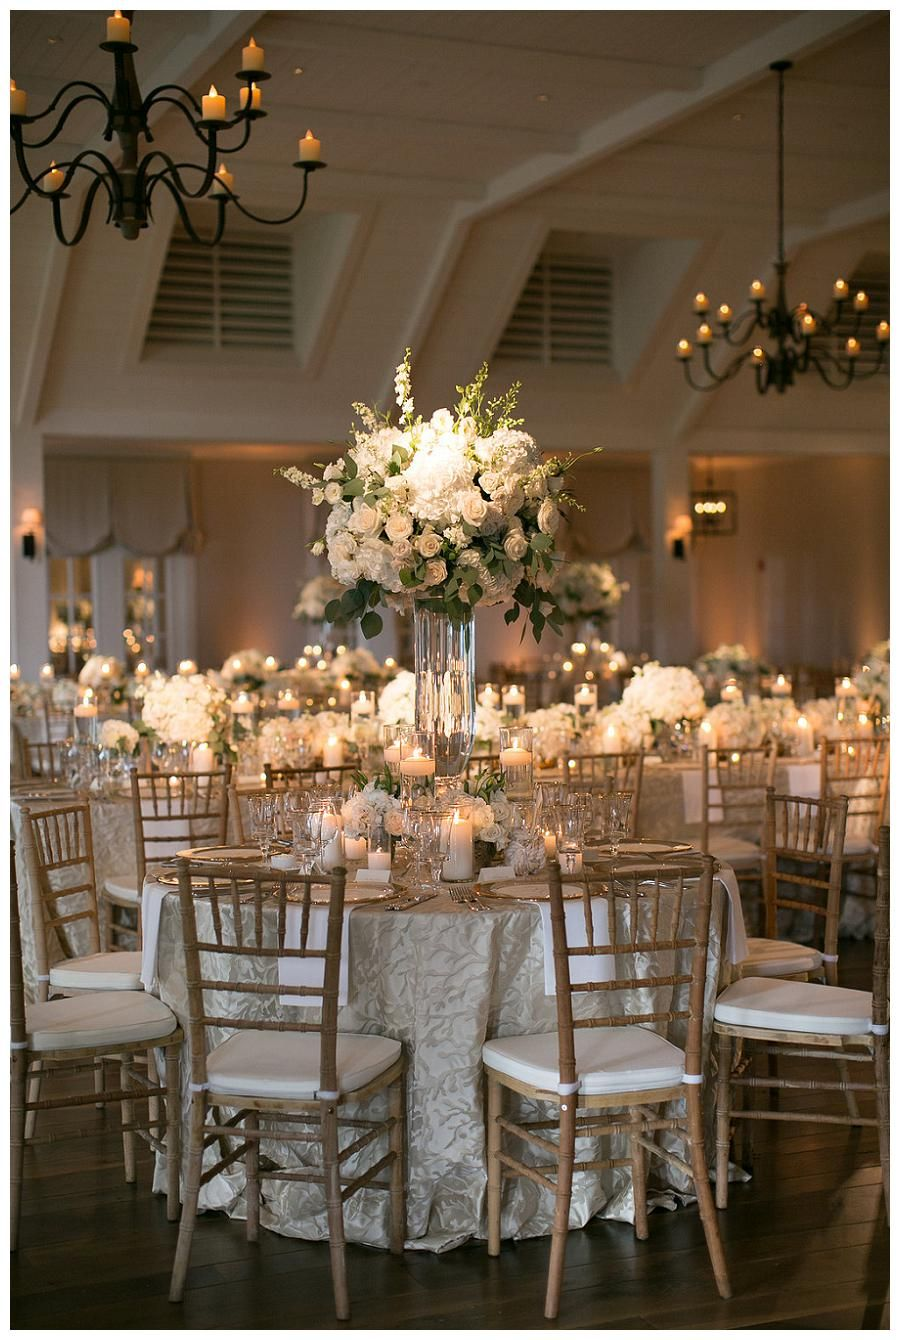 wedding reception decor ideas 36 white wedding decoration ideas wedding decorations 9868